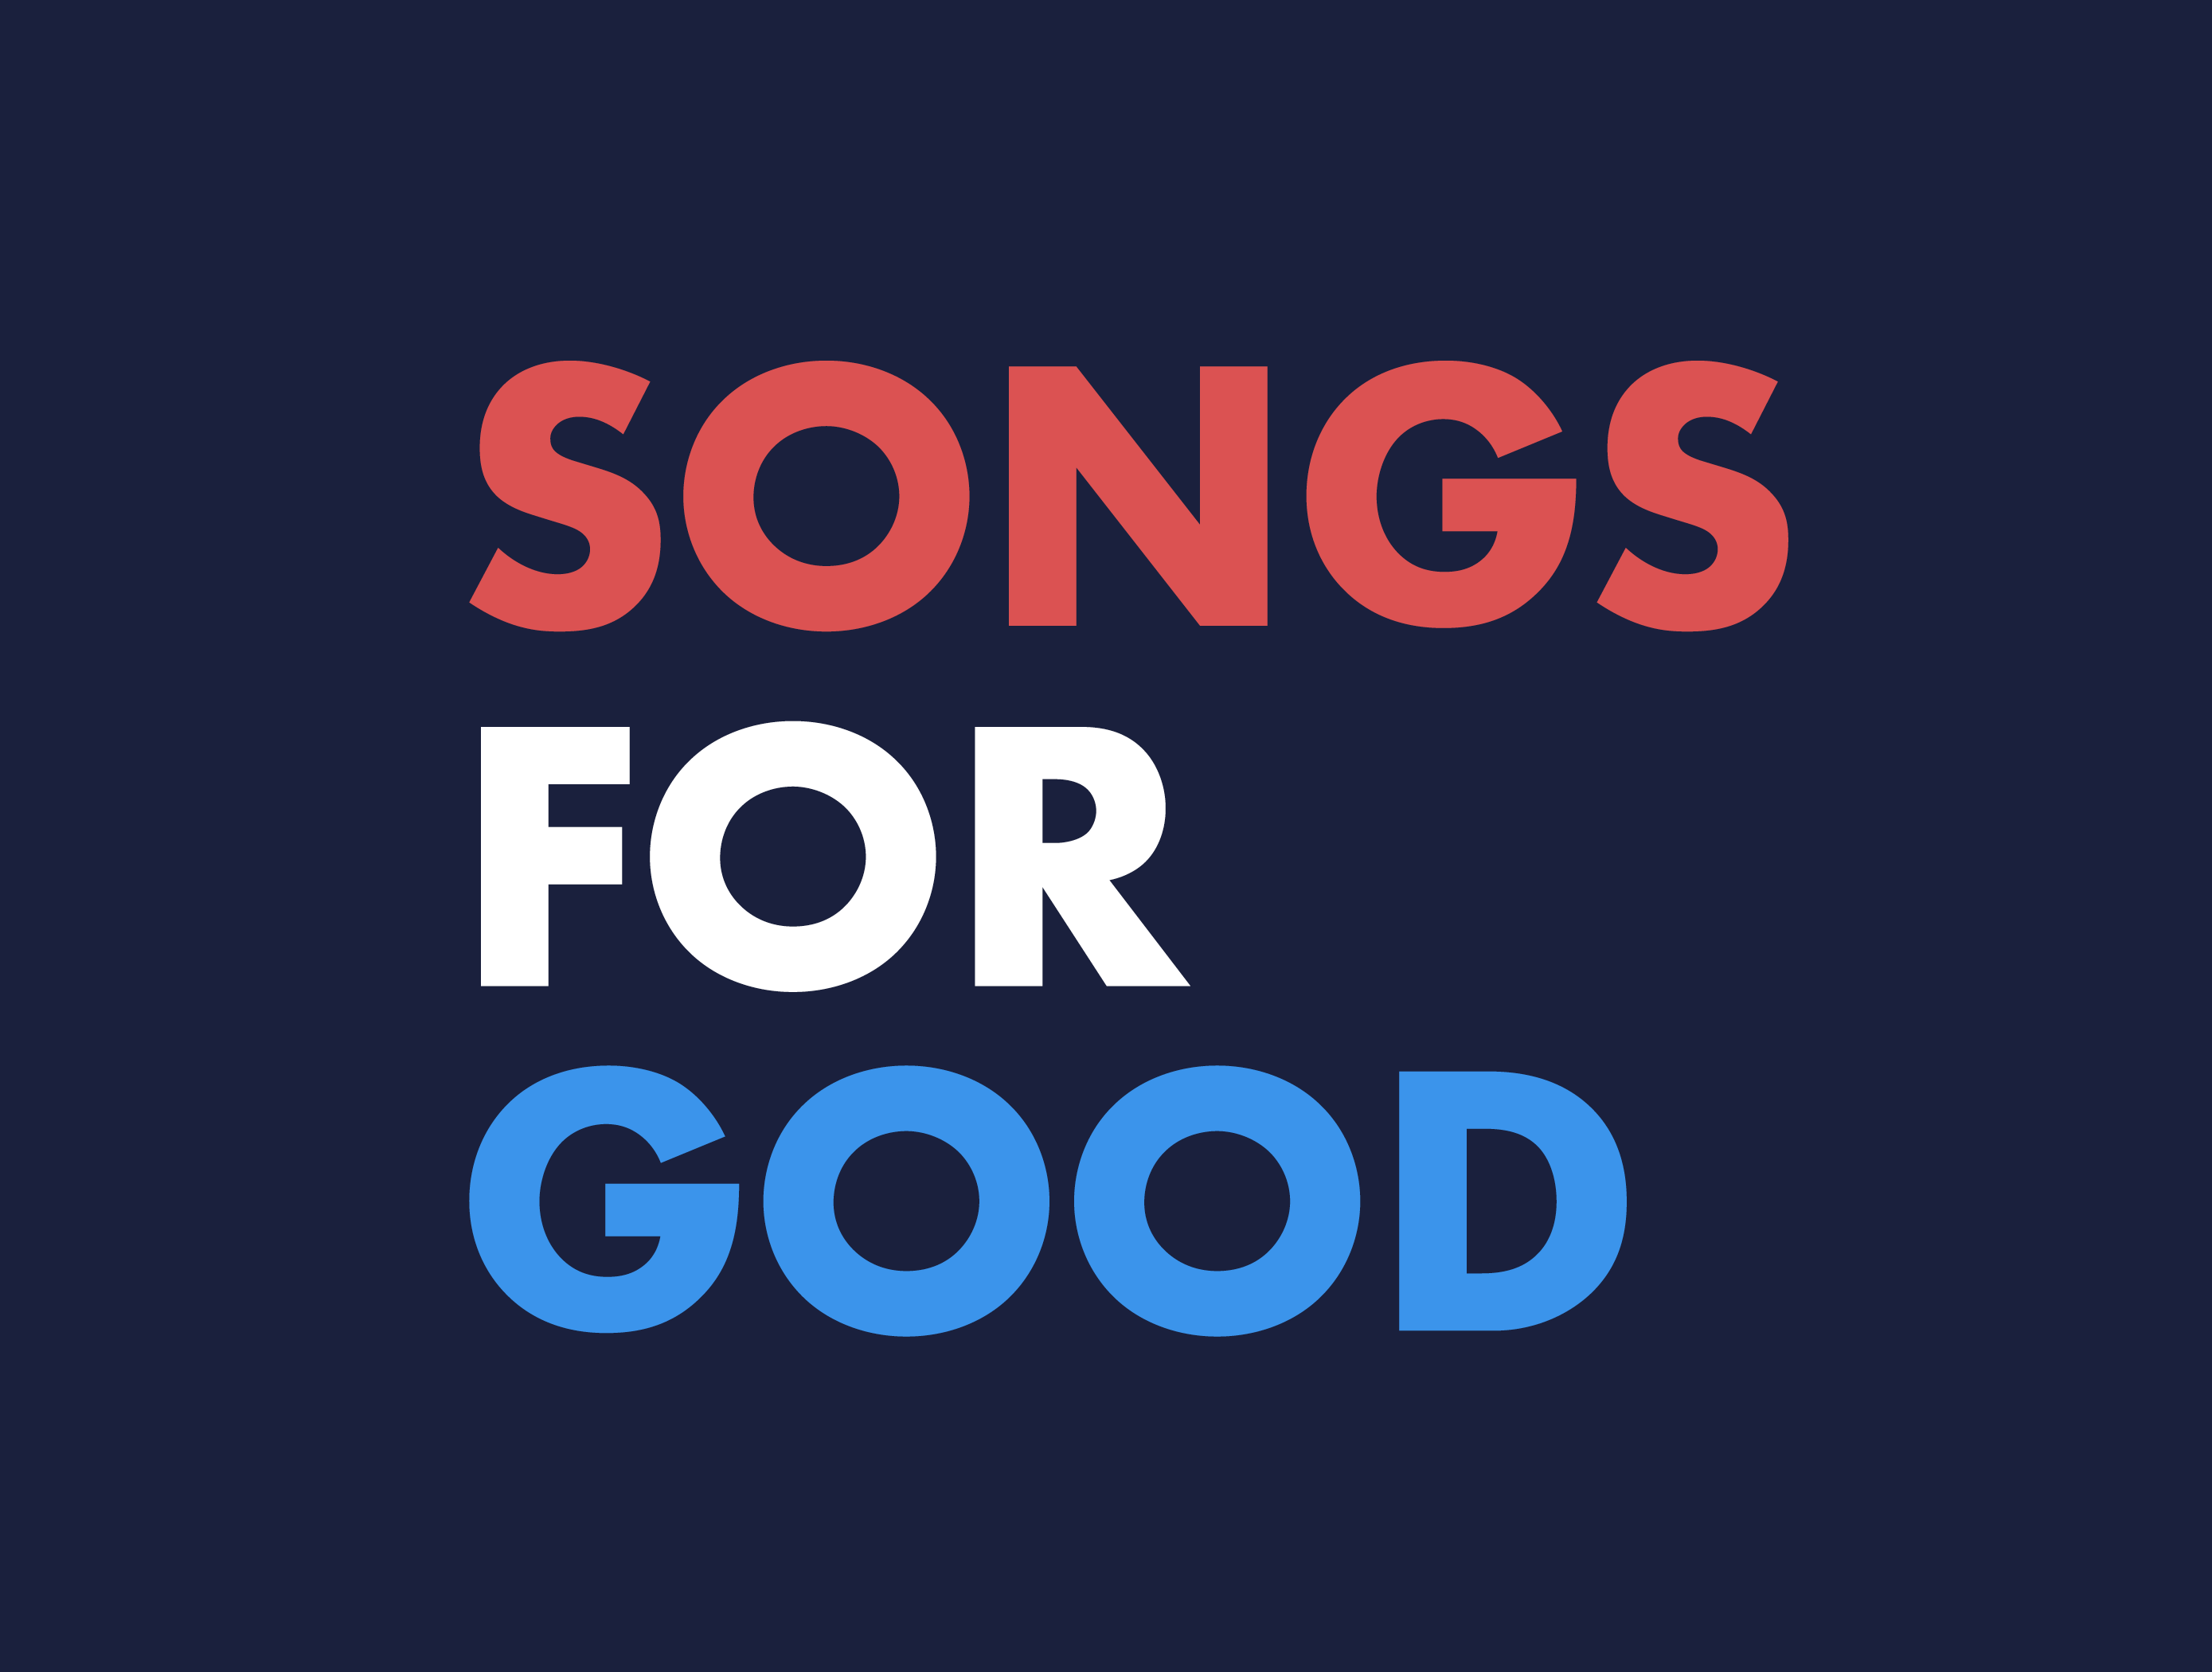 Songs for Good